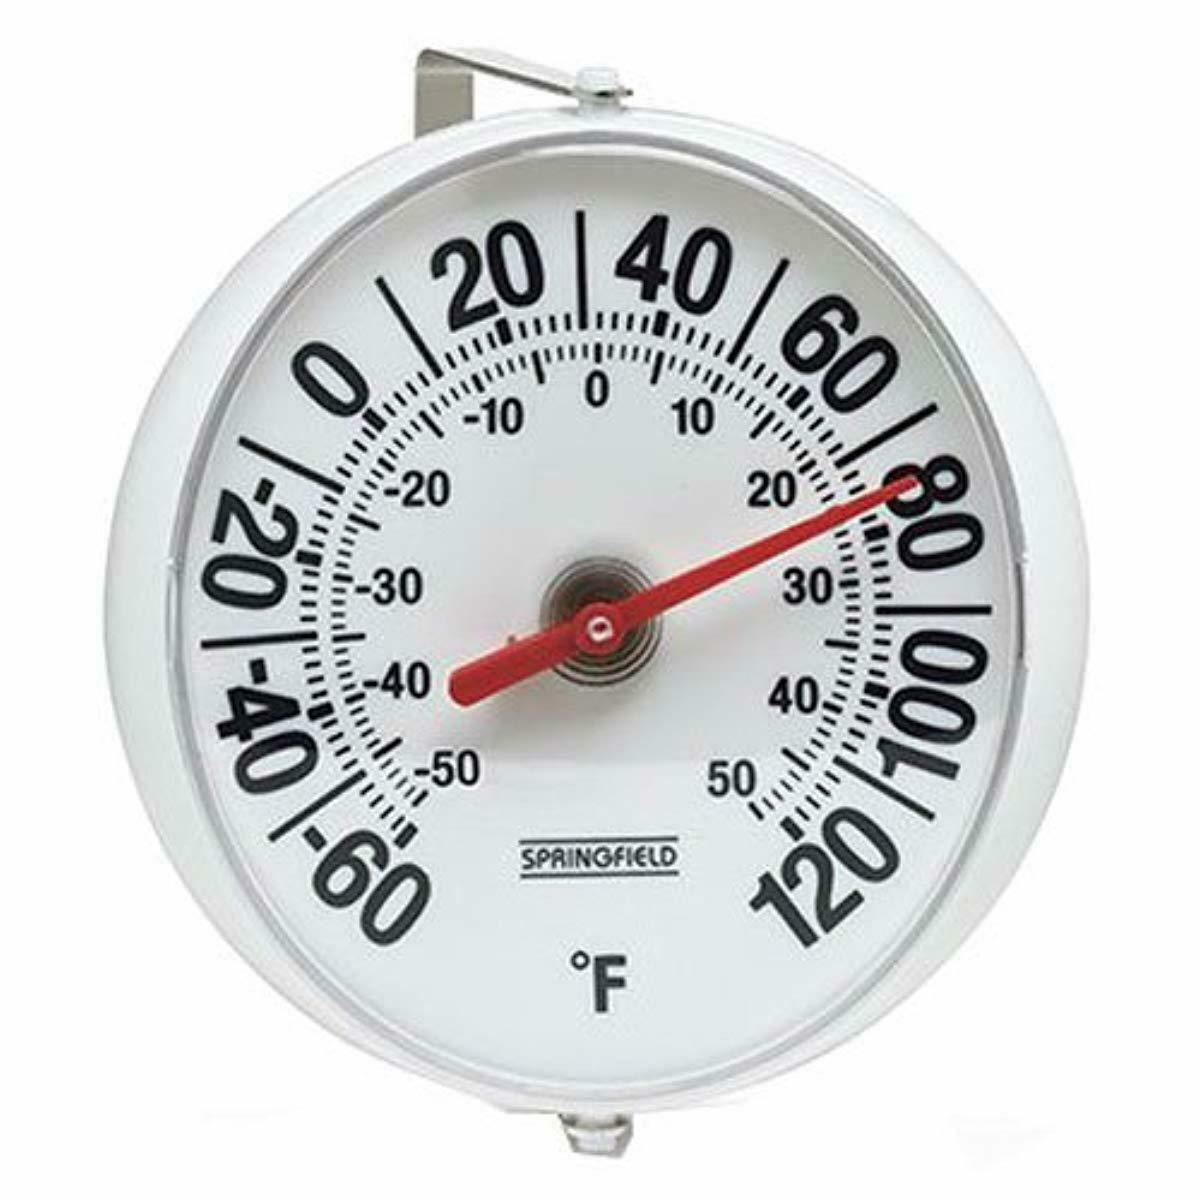 Decor Wall Large Weatherproof Round Thermometer Indoor Outdoor Patio 5.25 inch